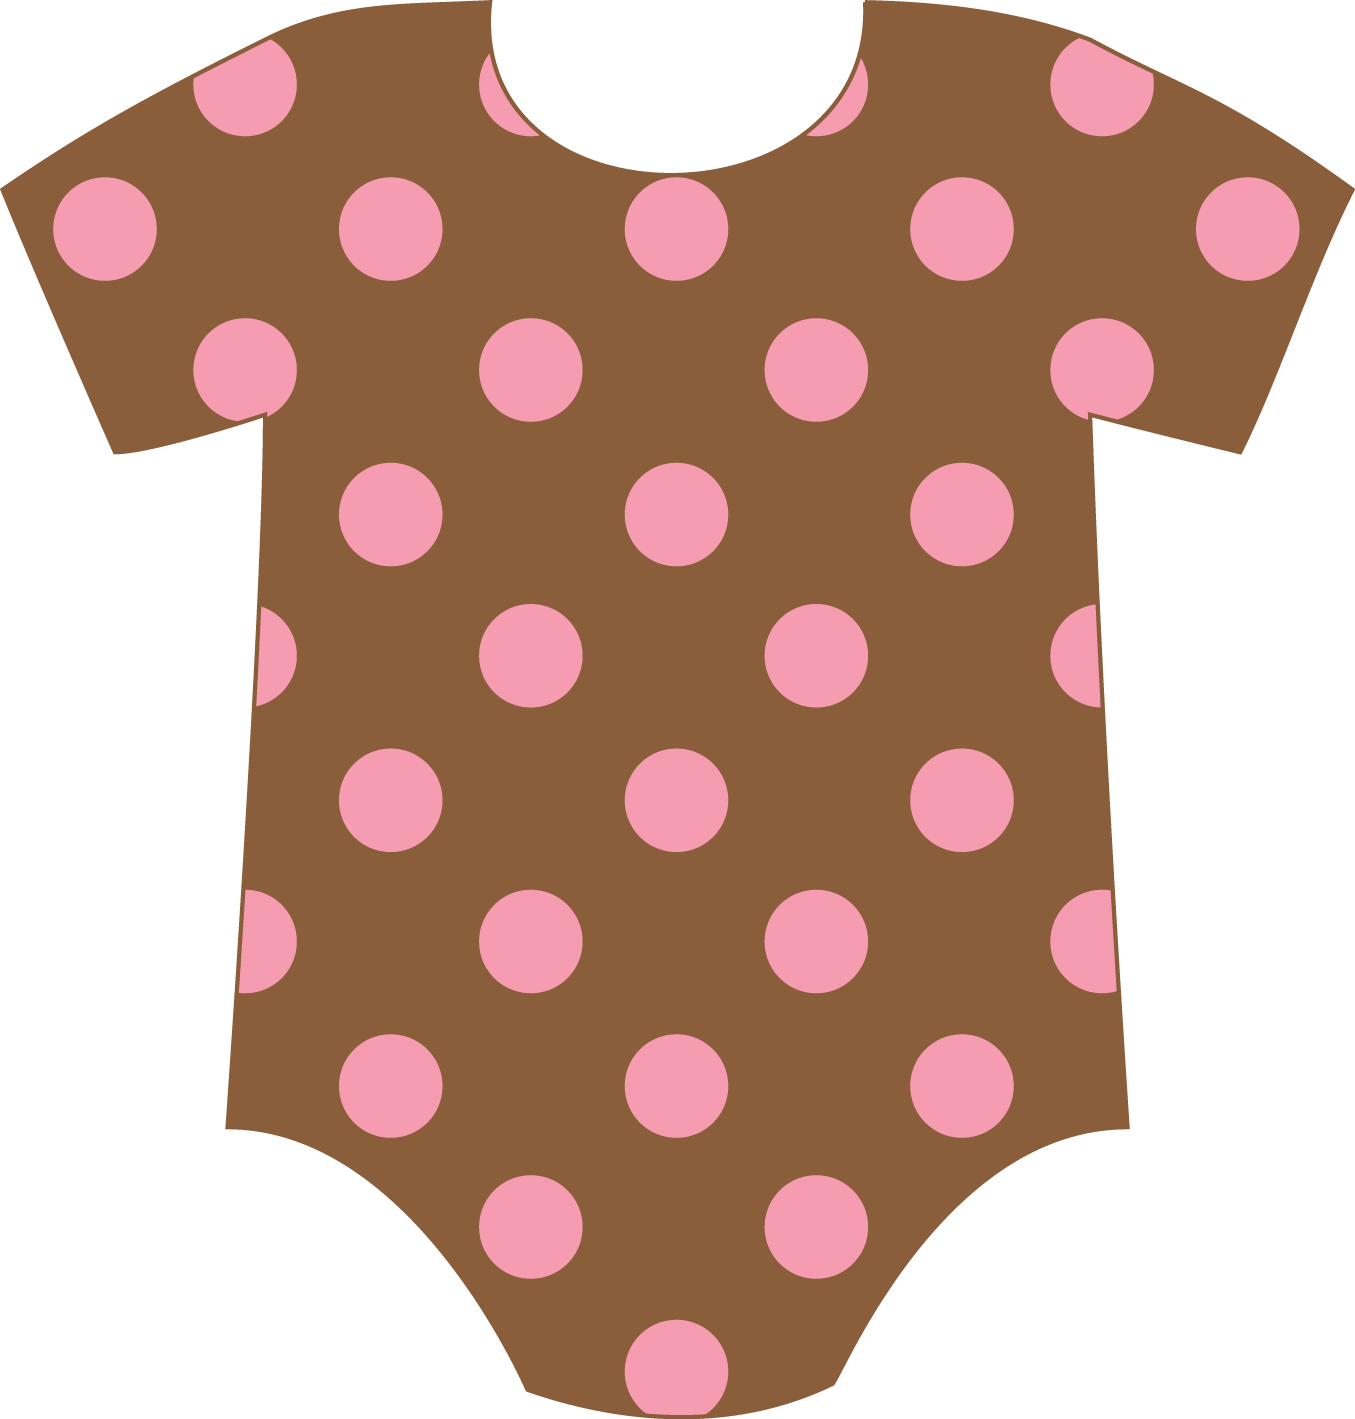 Pajamas clipart baby romper. Http sgaguilarmjargueso blogspot mx